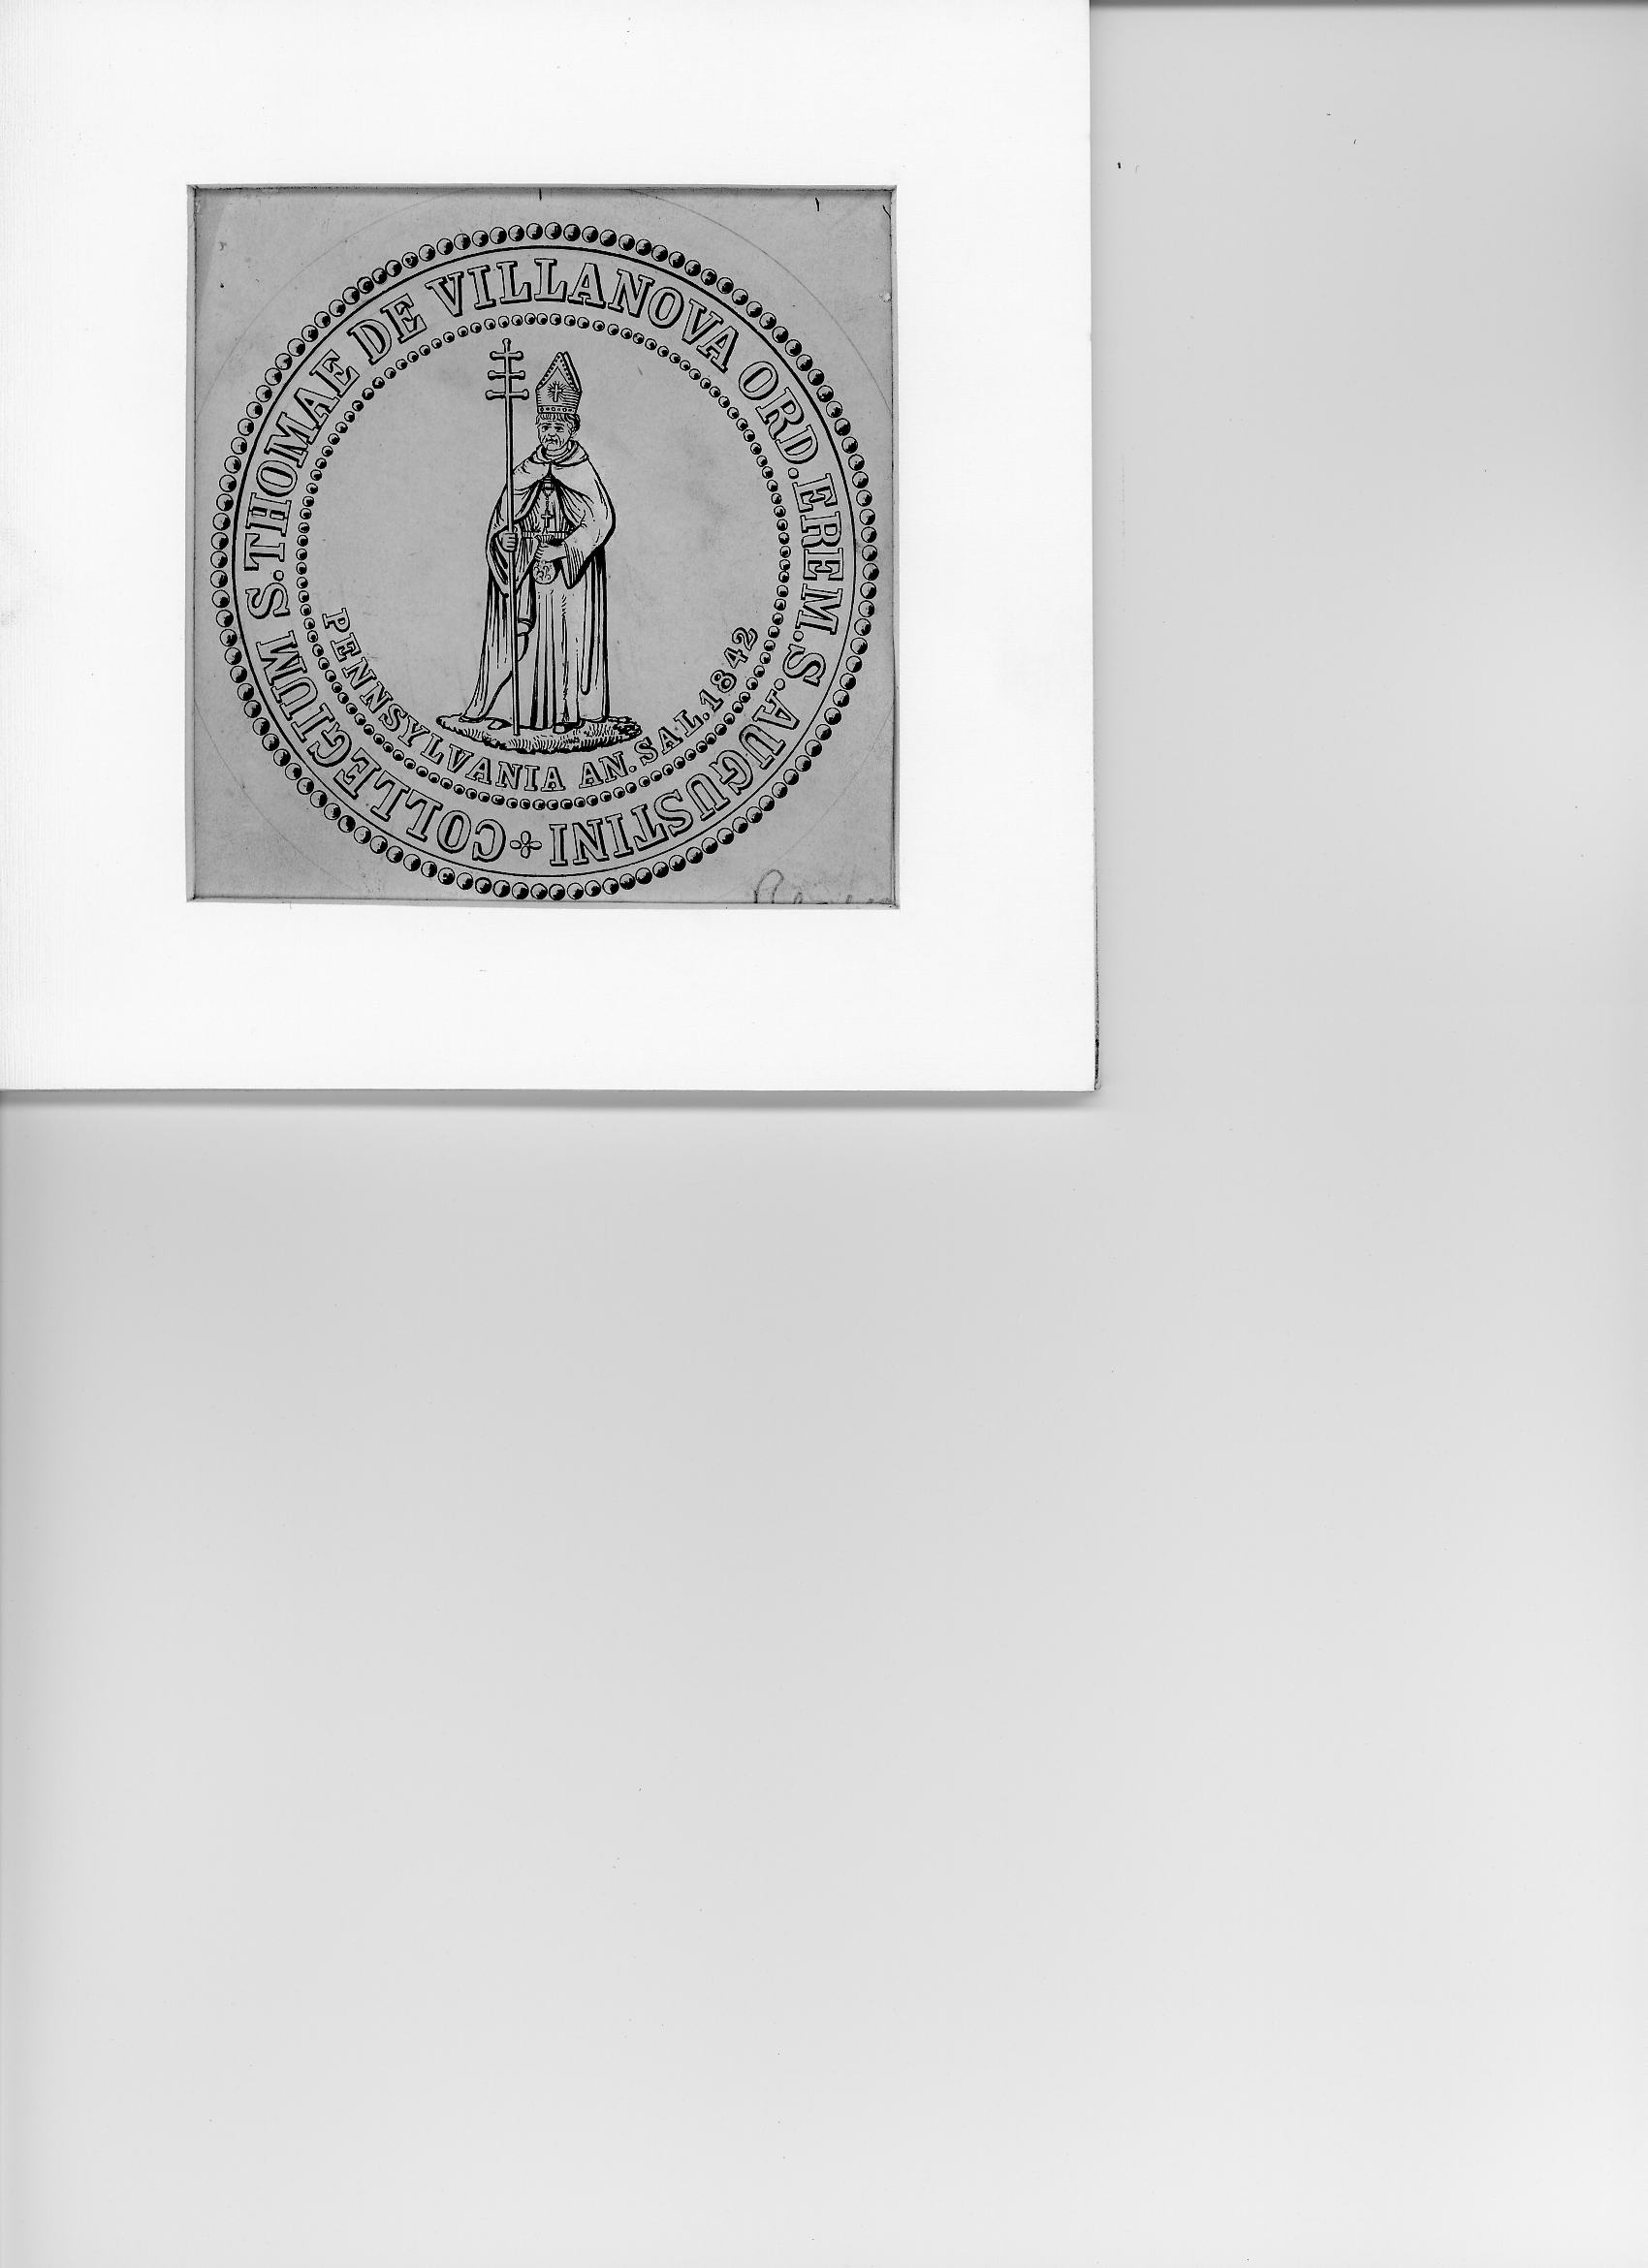 Second Villanova College Seal